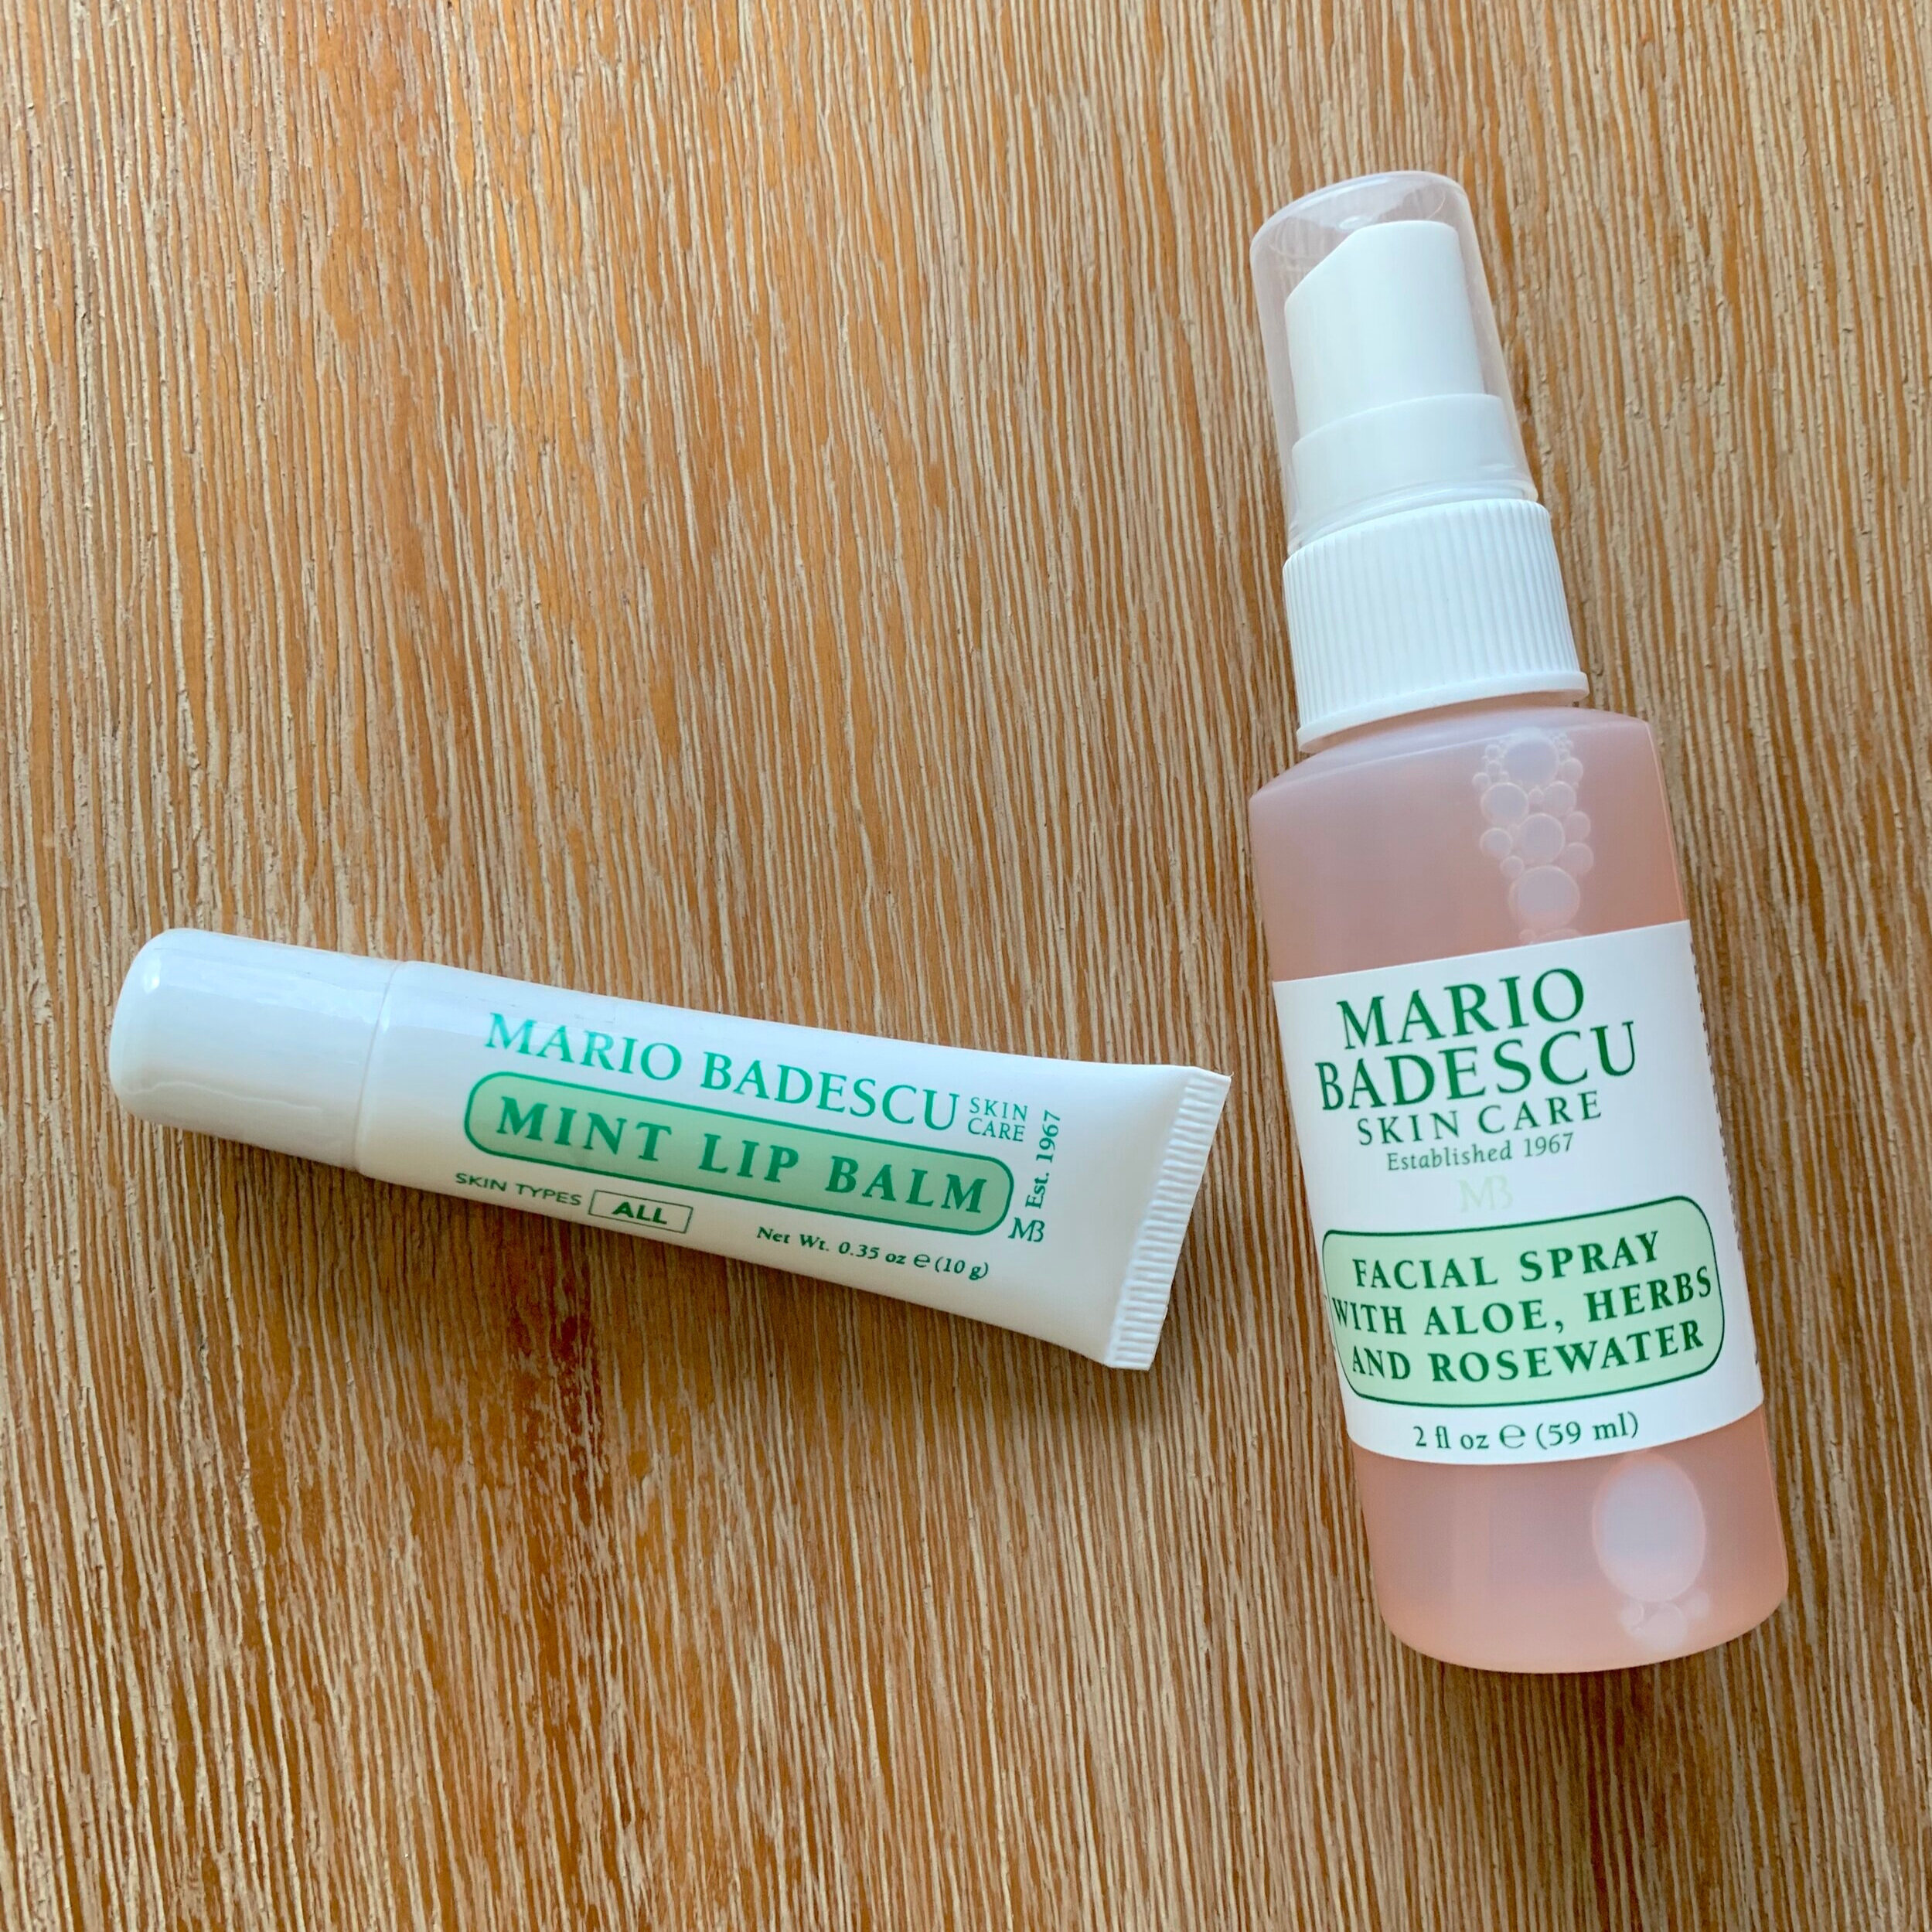 Mario Badescu - Newly founded brand: Mario Badescu that I came across and absolutely love! If you're looking for a lip balm that keeps your precious lips hydrated and long-lasting and/or a daily facial spray to revive yourself during the workweek; this is it! Both smells amazing.However, if you have oily skin like myself… the facial spray is not a matte form, so keep those oil wipes in handy if you're looking to keep your oil under control.Find at your local Ulta store.